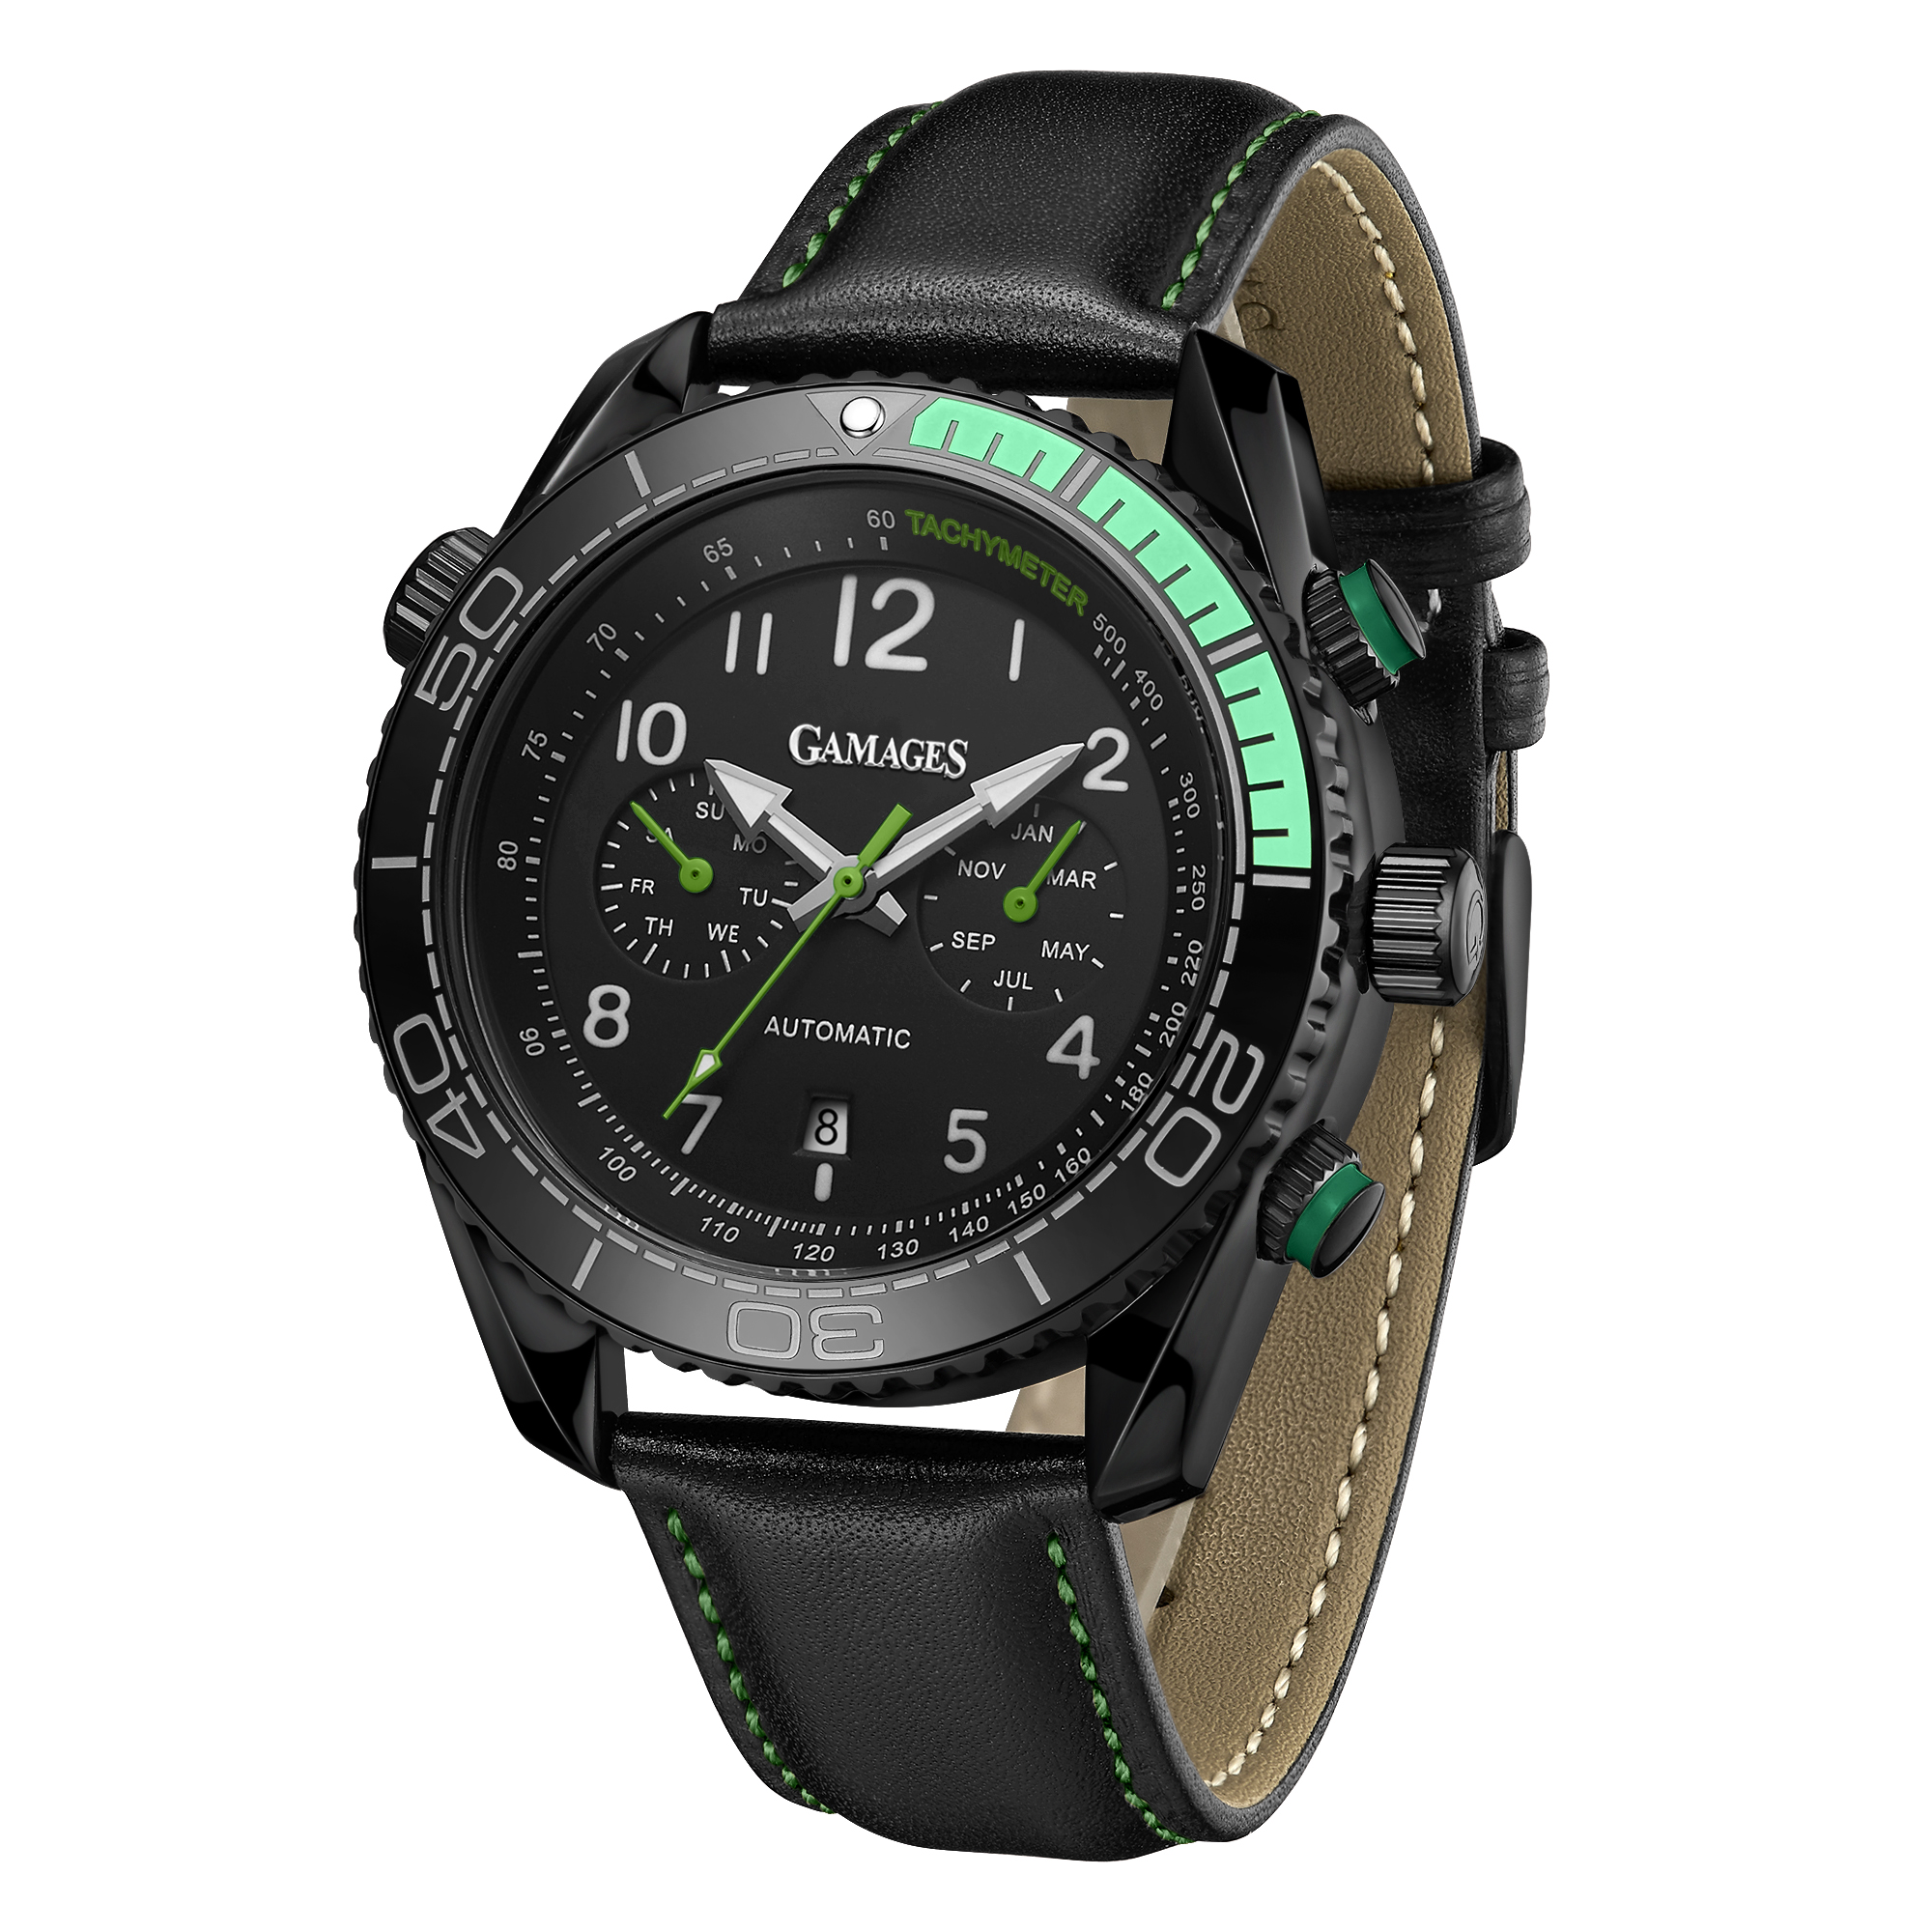 Limited Edition Hand Assembled GAMAGES Supreme Automatic Green – 5 Year Warranty & Free Delivery - Image 5 of 8